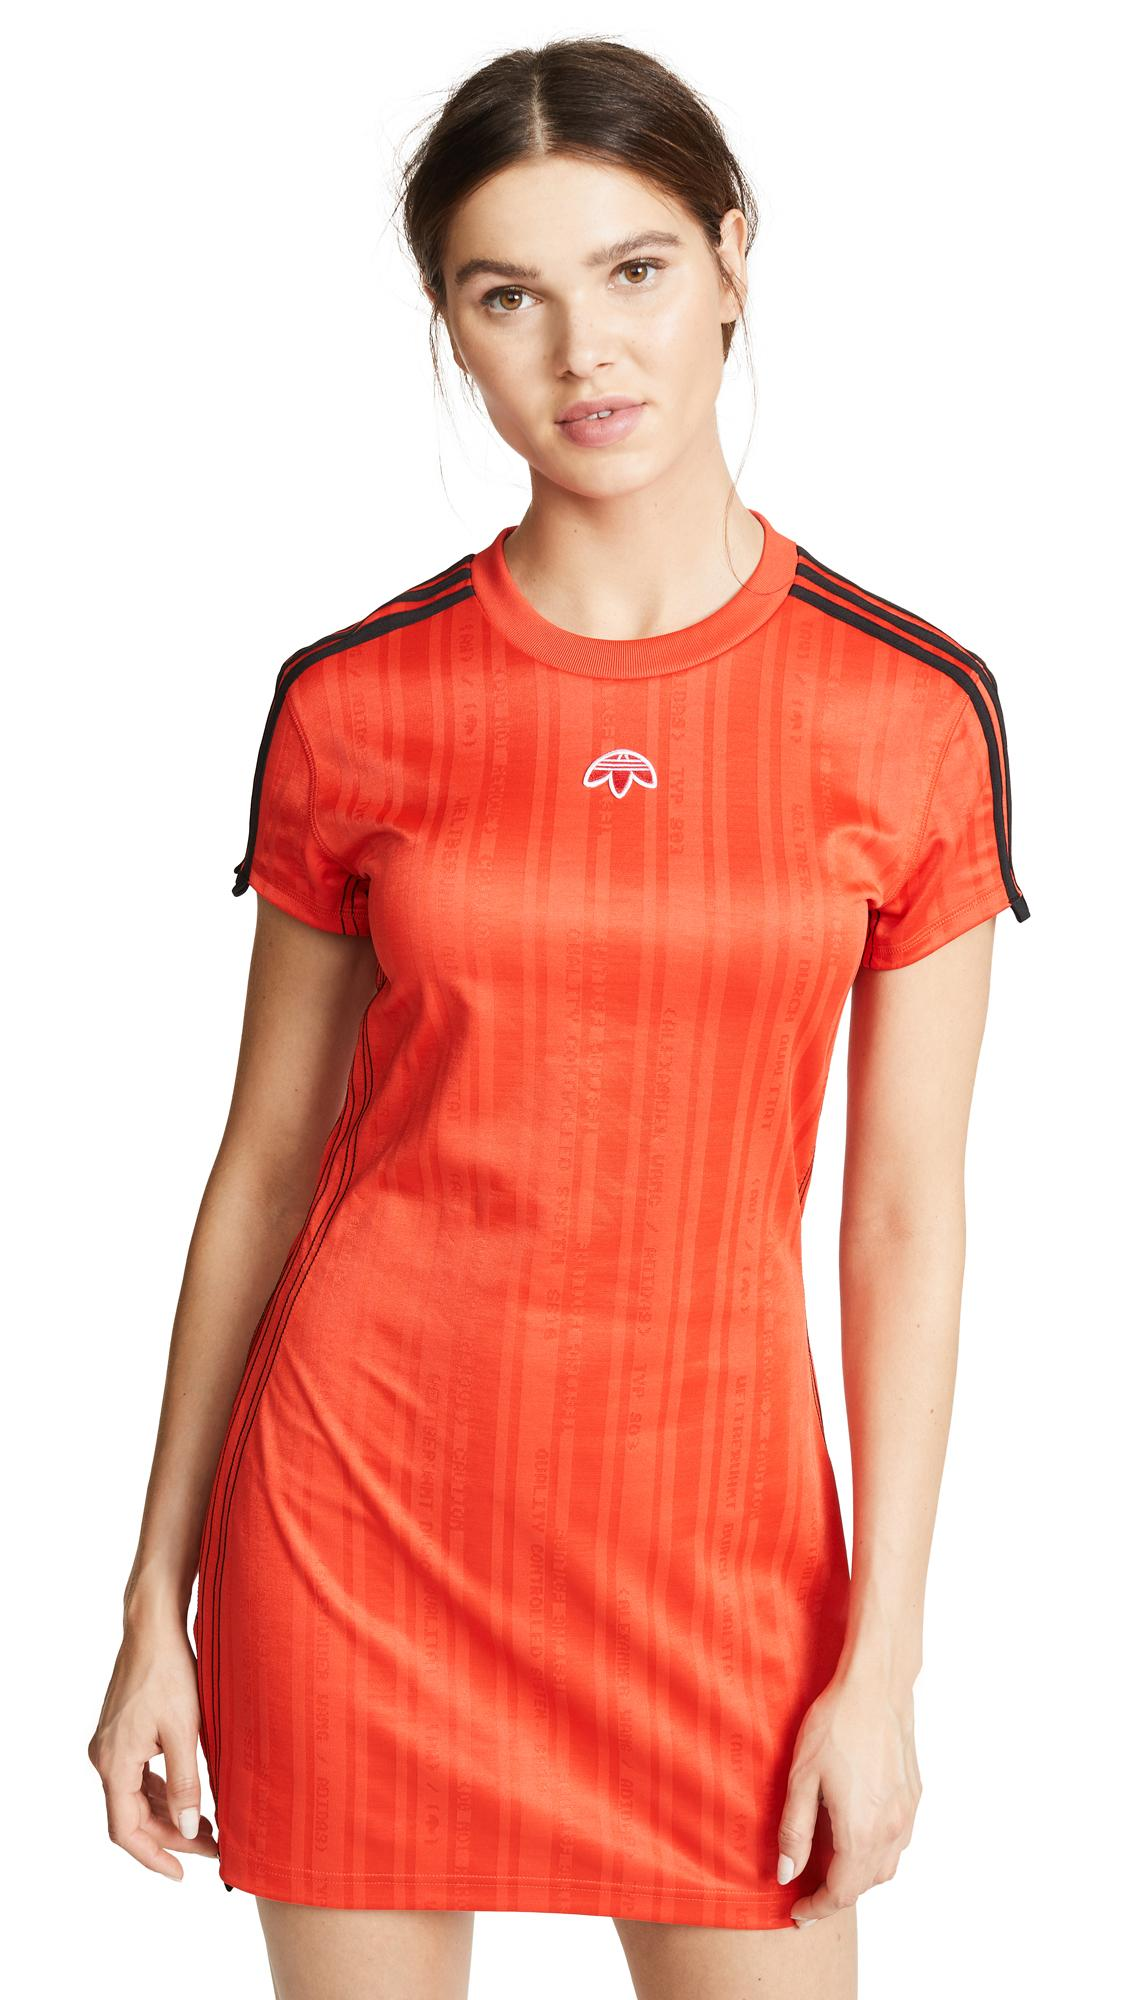 ab83ab26491 Adidas Originals By Alexander Wang Aw Dress In Corred Black